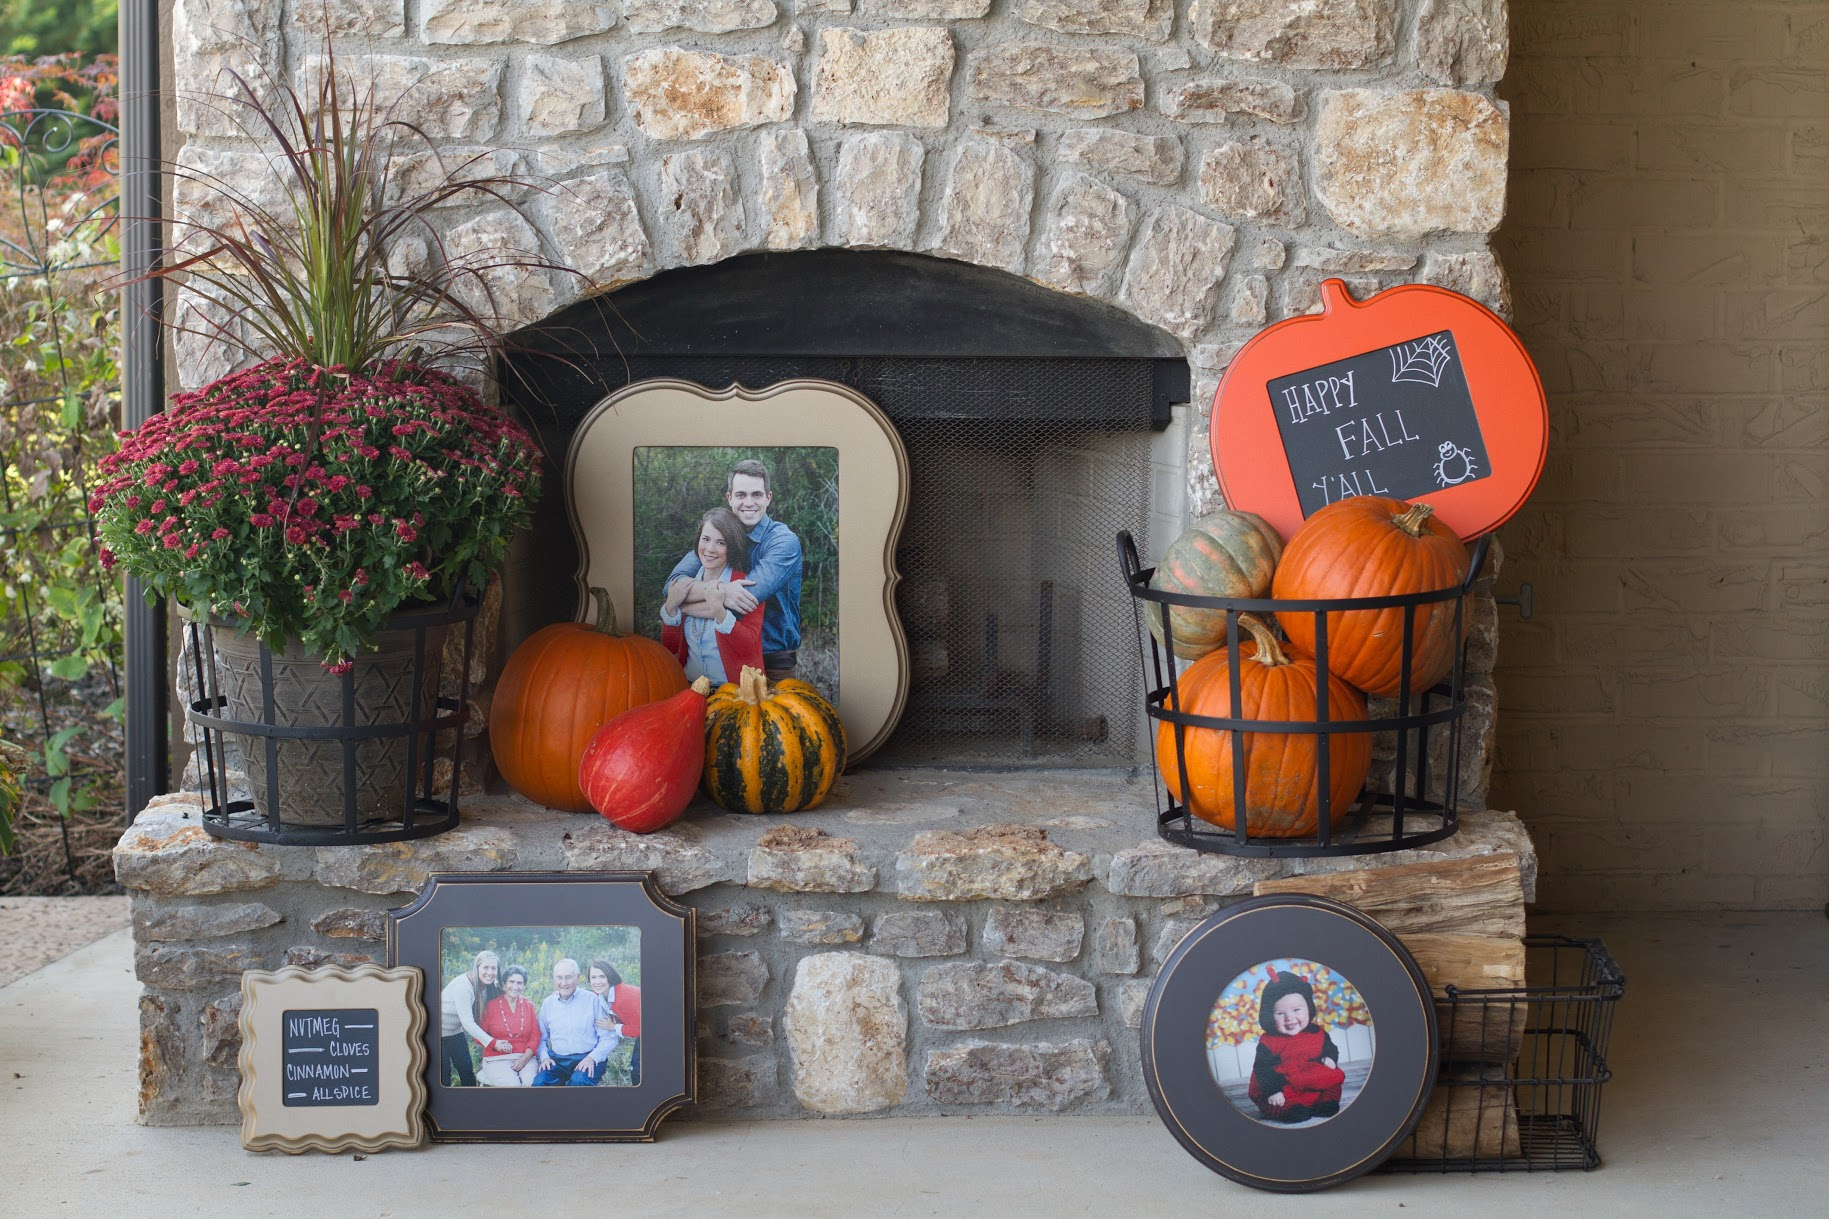 Fall decor at it's finest!